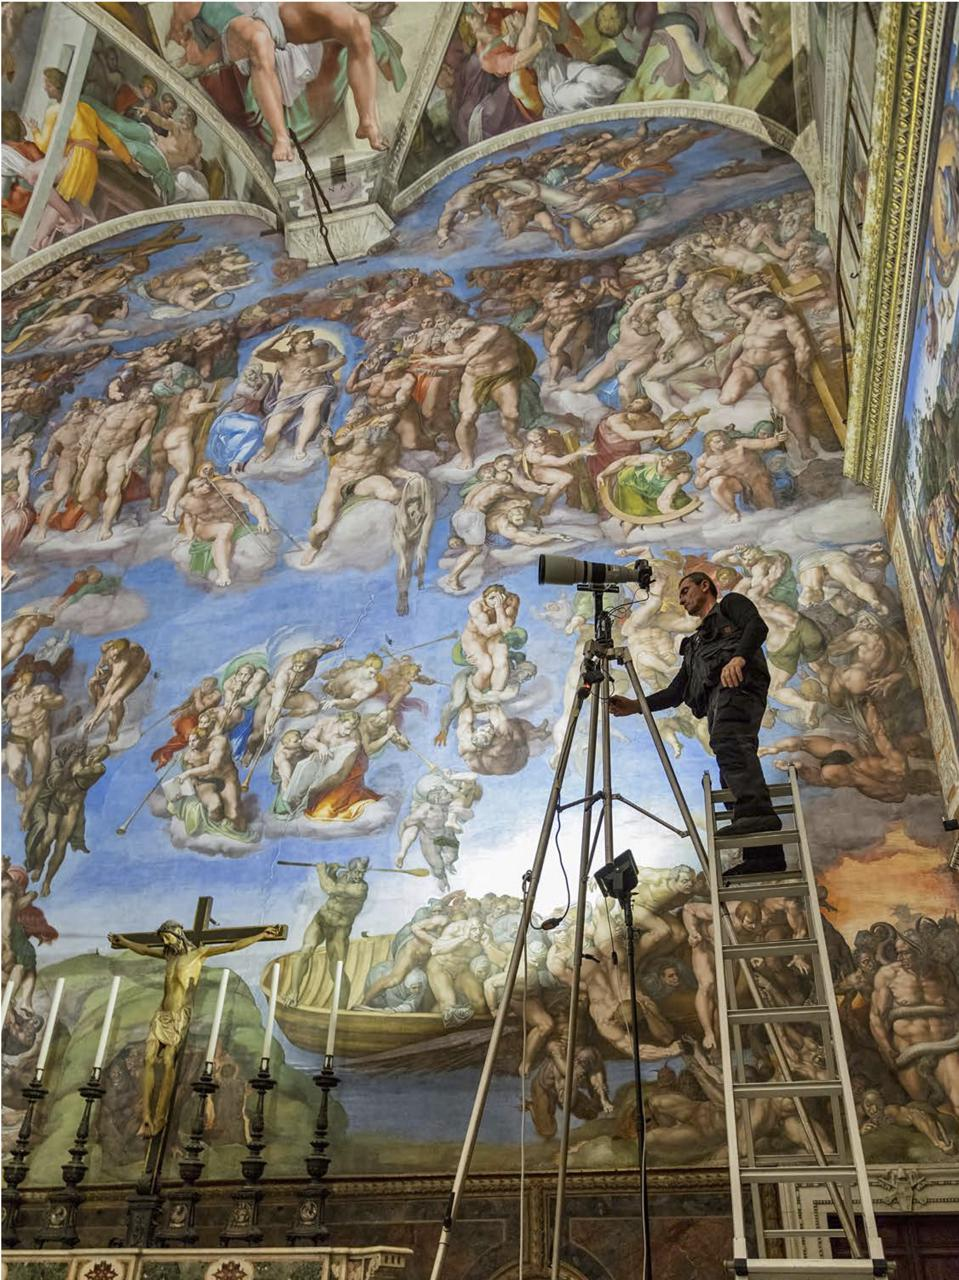 Using a 33-foot-tall scaffold that had to be assembled and dissembled nightly, the five-person photography team took over two months to capture the 270,000 individual frames that would make up the complete Sistine Chapel